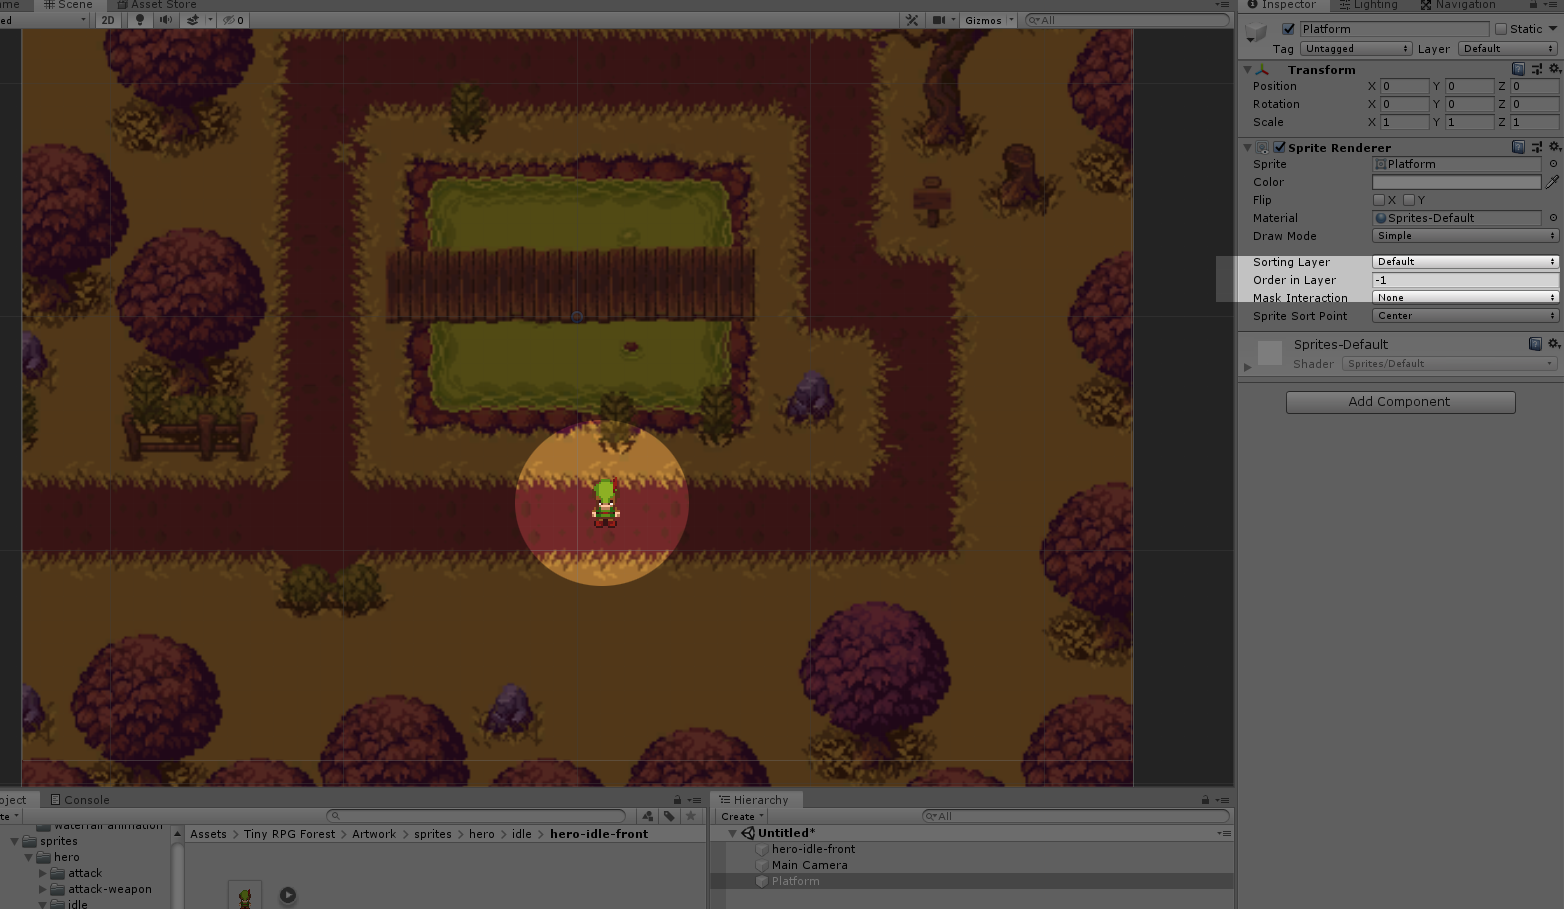 Unity 2D Sprite not showing up in the scene error